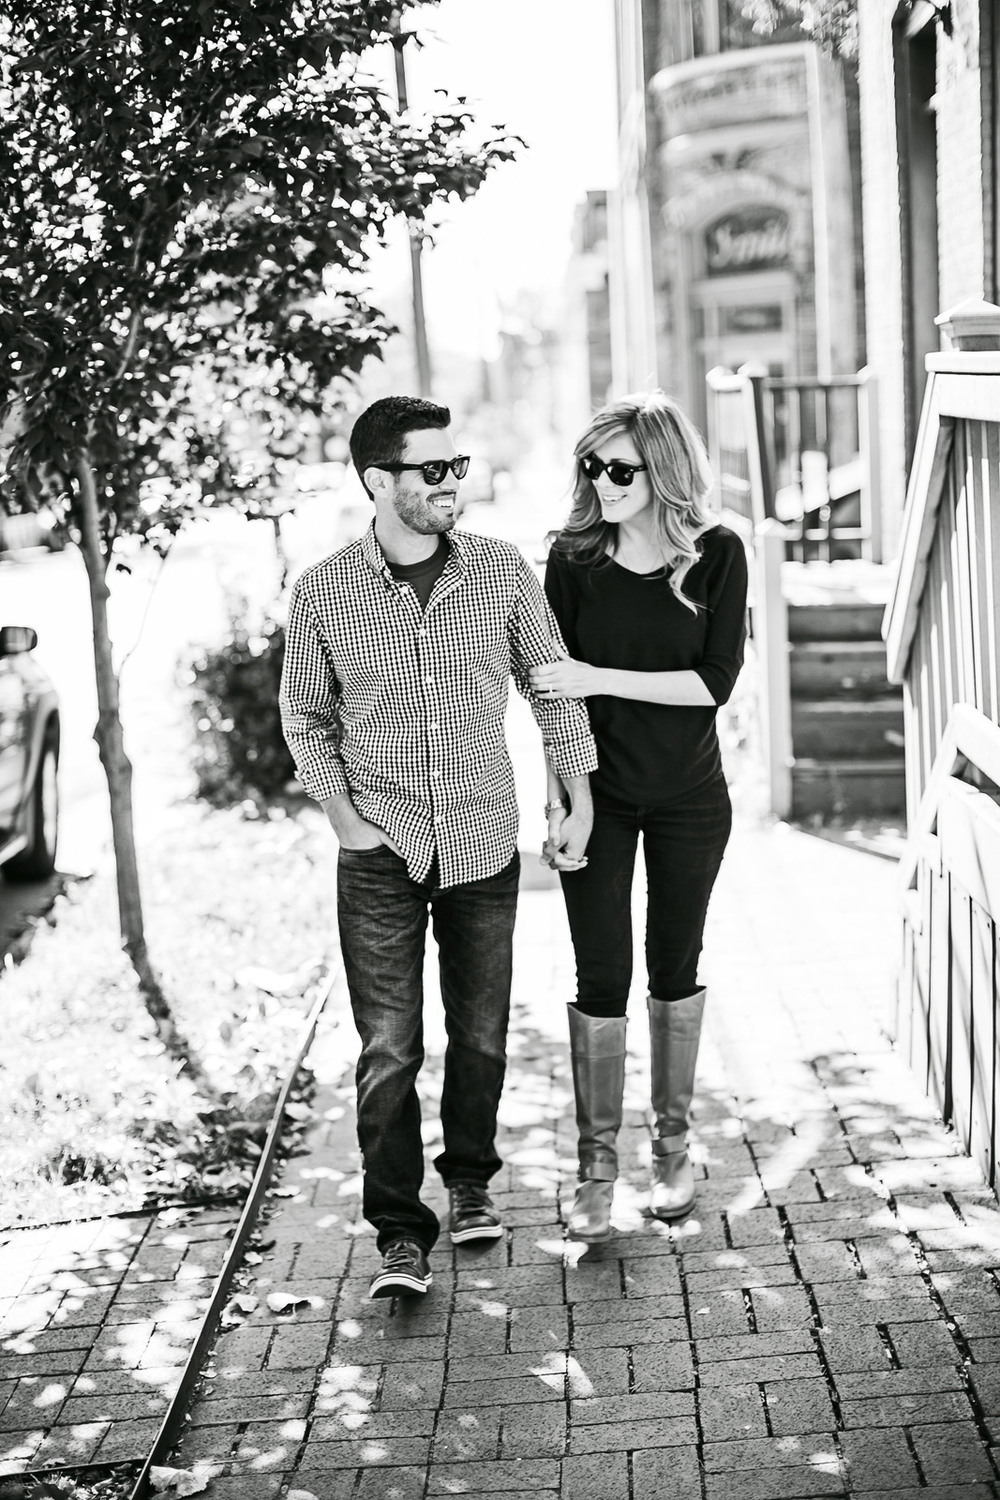 Oldani Photography St Louis Soulard Smile Engagement_20141101_123626-2.jpg